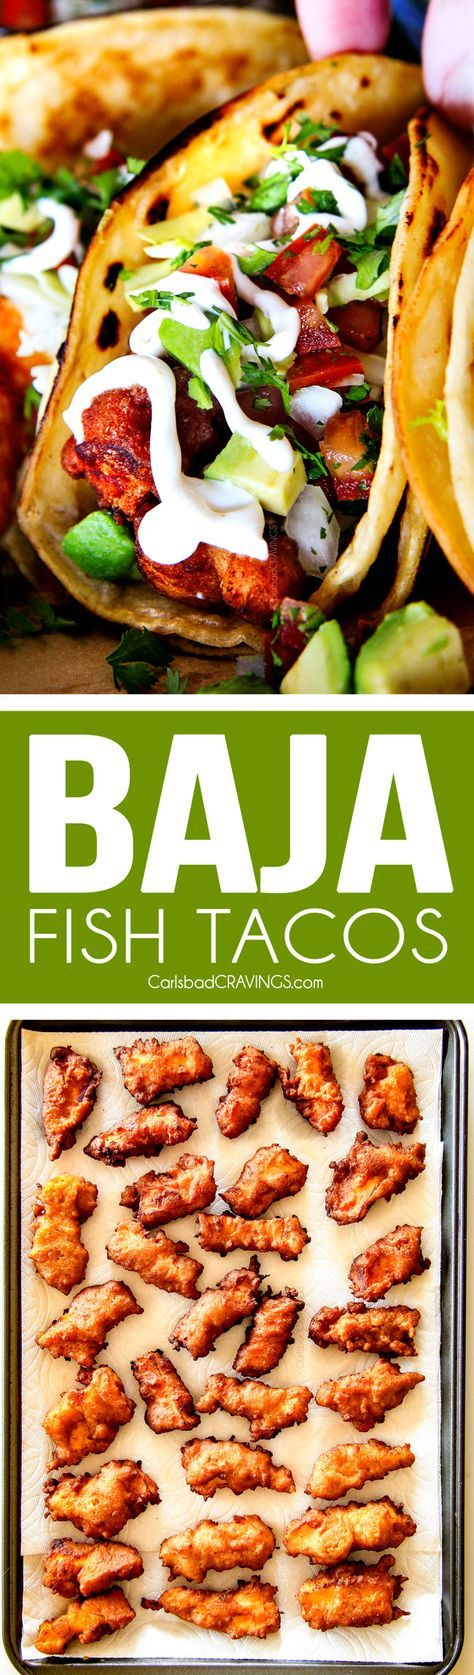 Photo of Baja Fish Tacos with Pico de Gallo and White Sauce (Video)